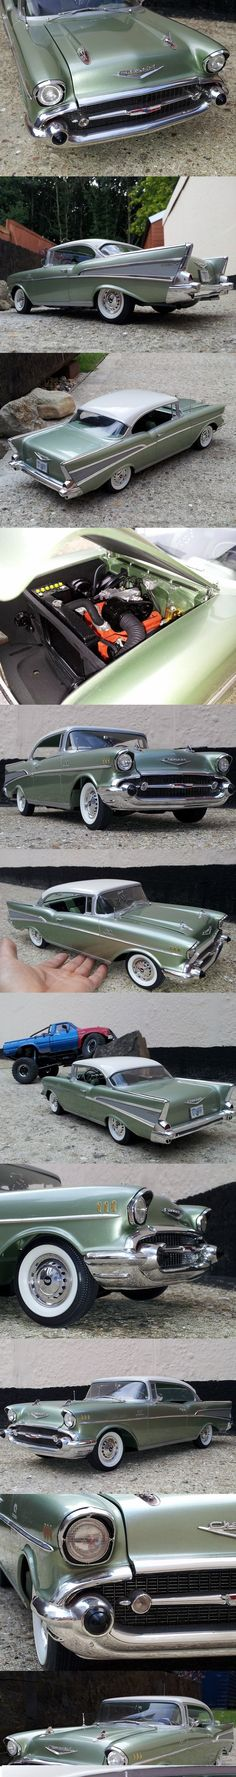 1957 Chevy...Re-pin...Brought to you by #HouseofInsurance for #CarInsurance #EugeneOregon